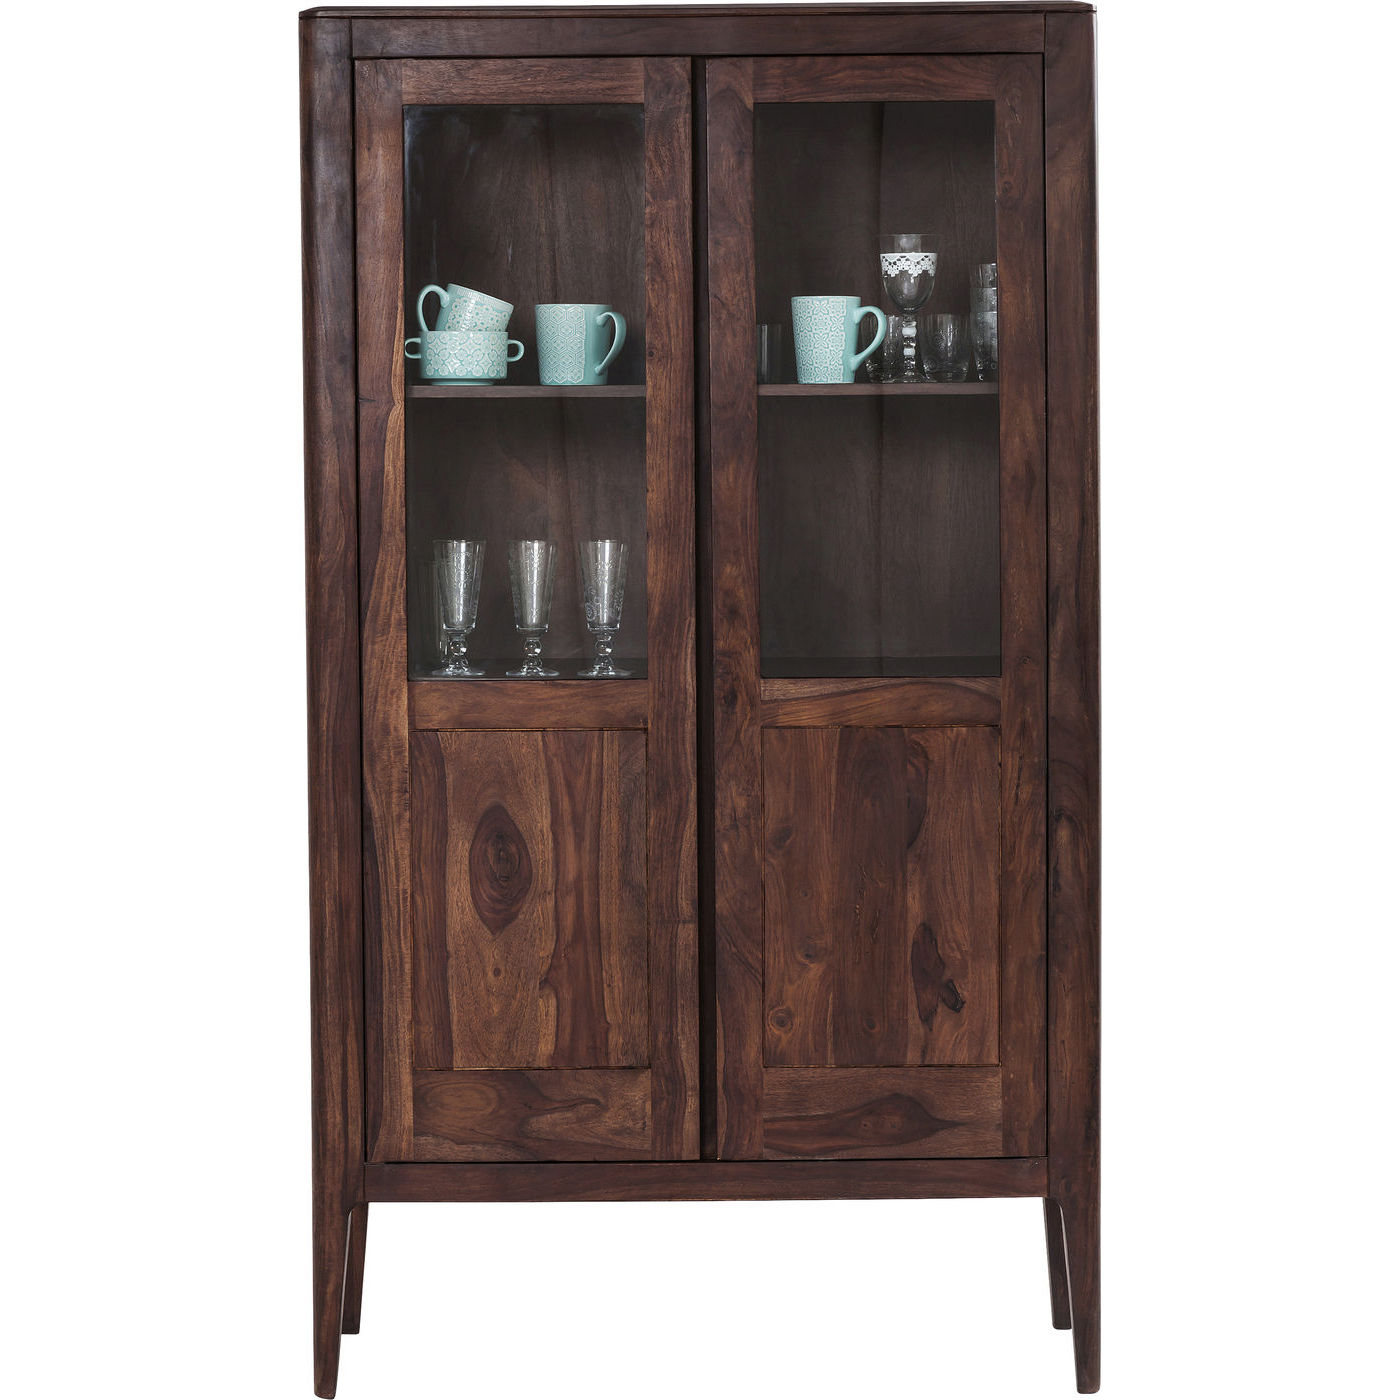 KARE DESIGN Brooklyn Walnut Display vitrineskab - valnddebrunt sheesham/palisander, 2 lger